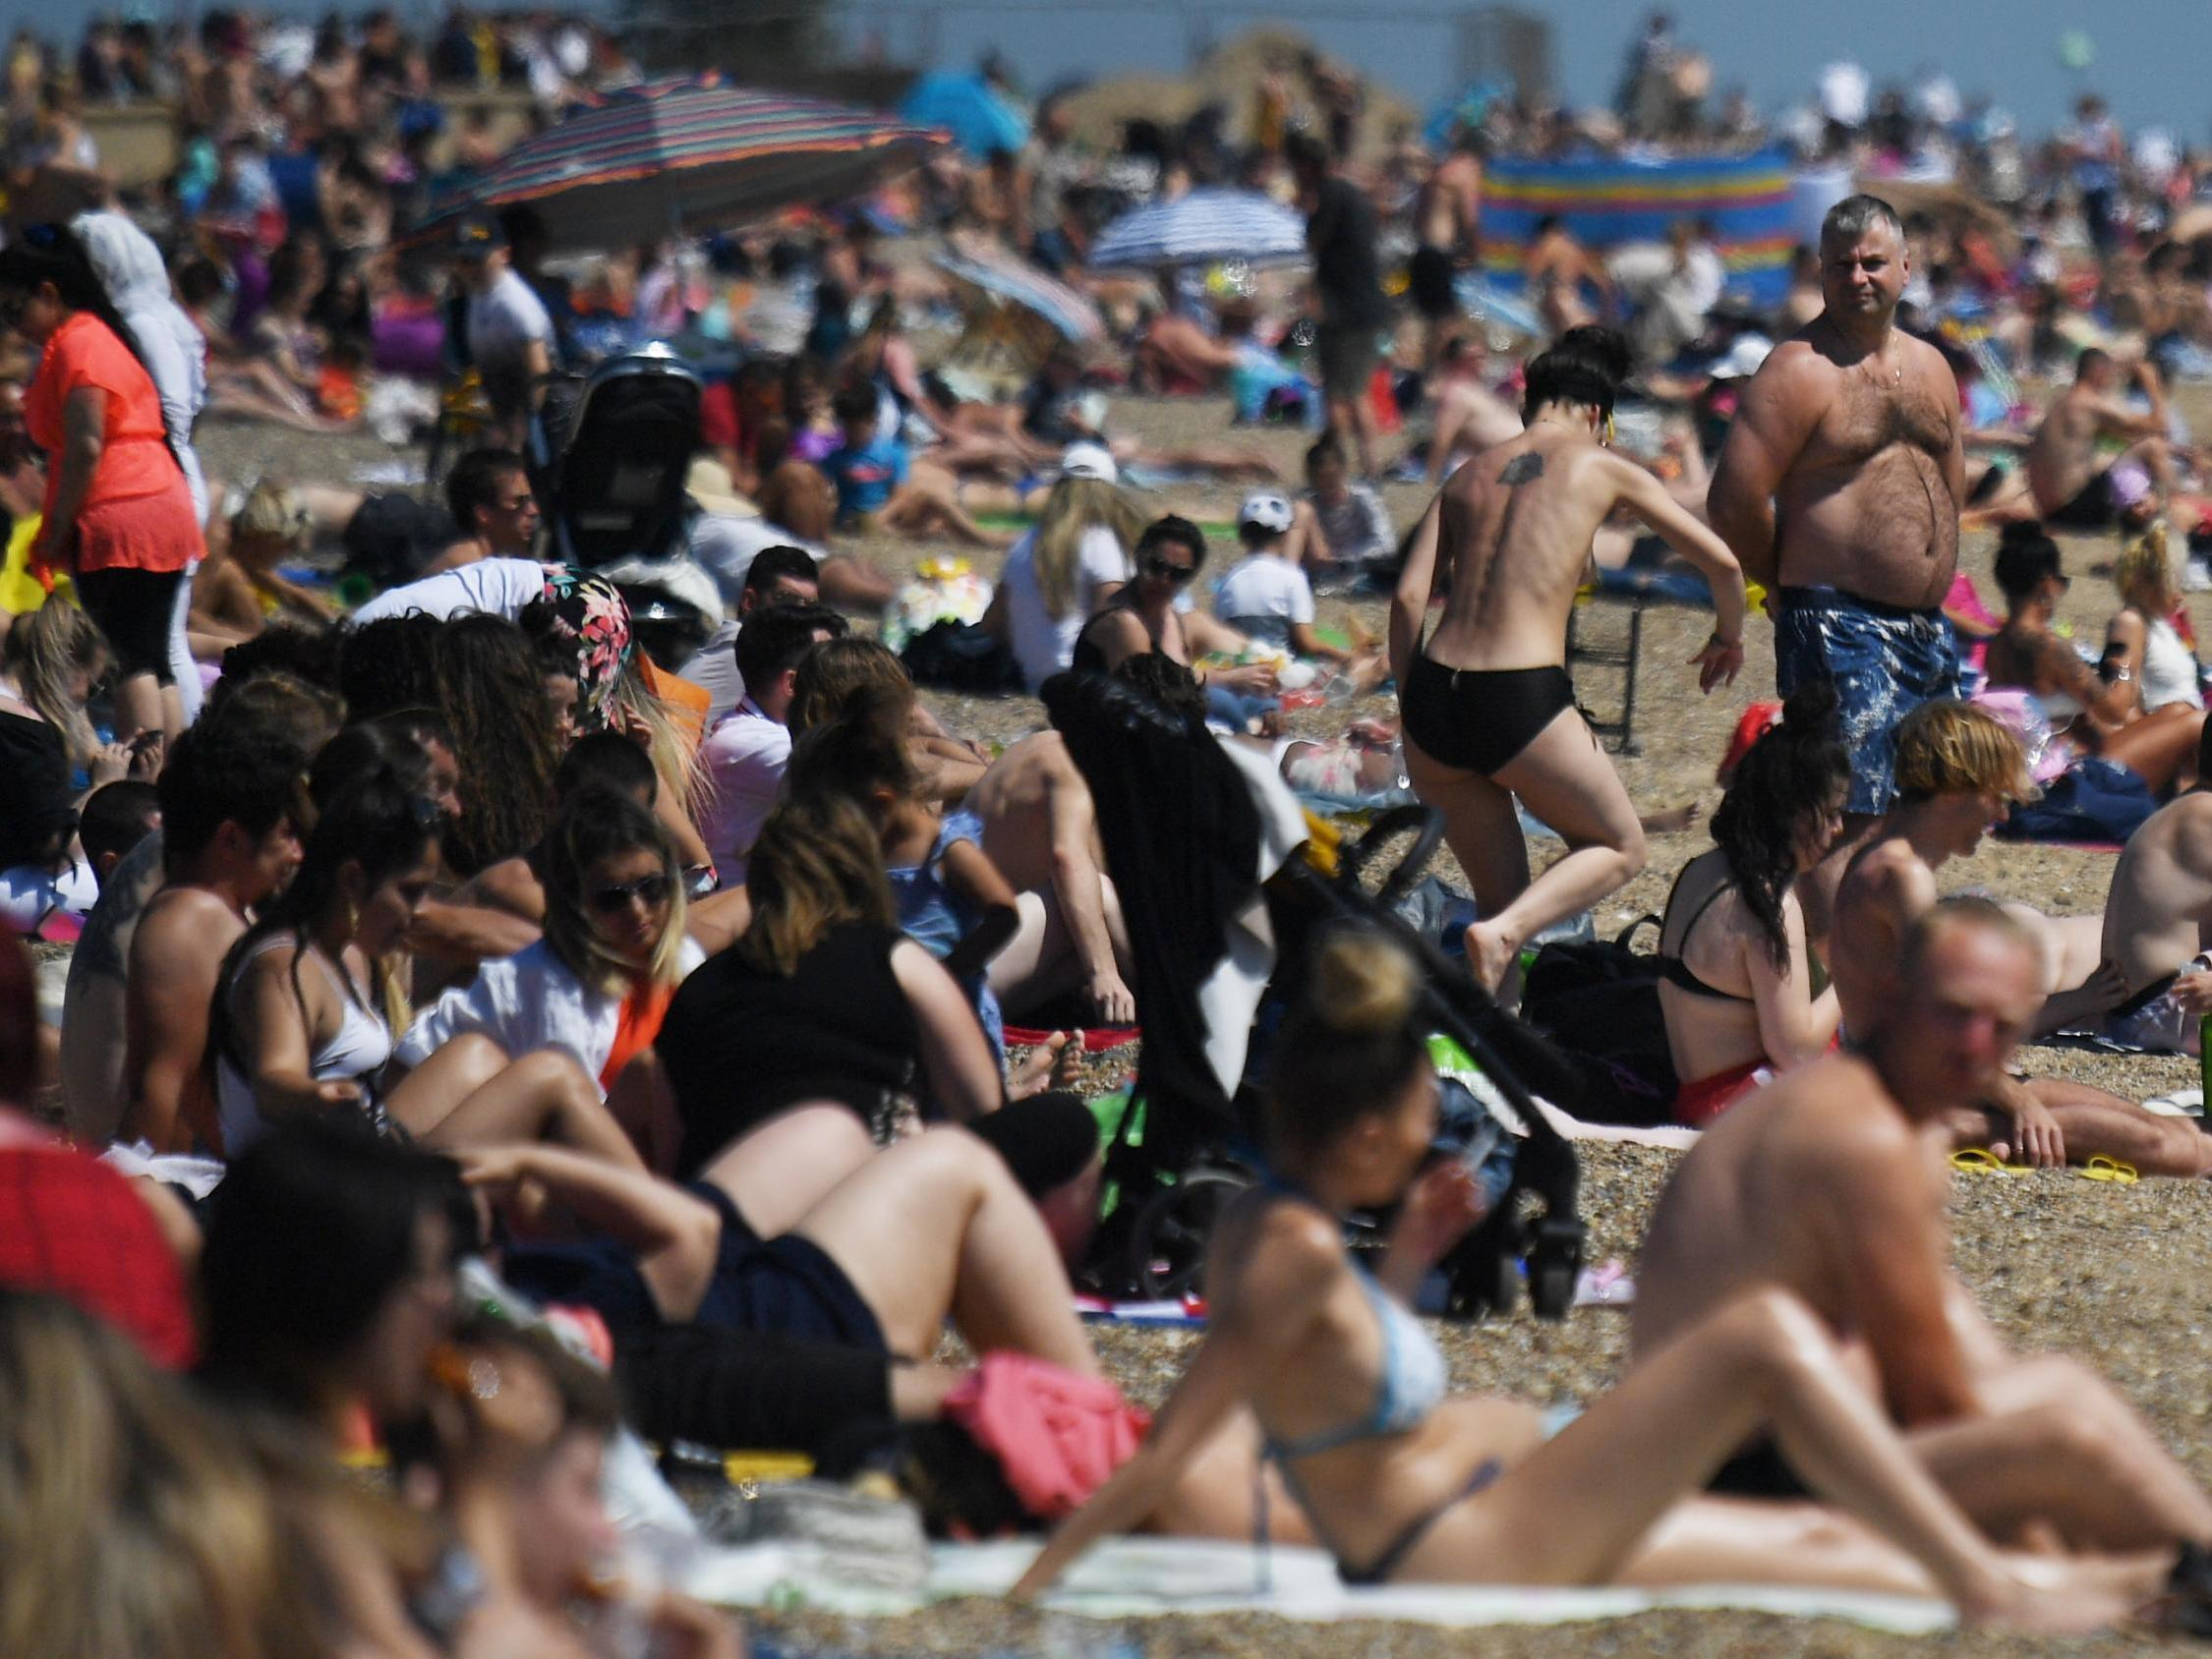 UK weather: Britain braces for hottest day of year as public urged to maintain social distancing